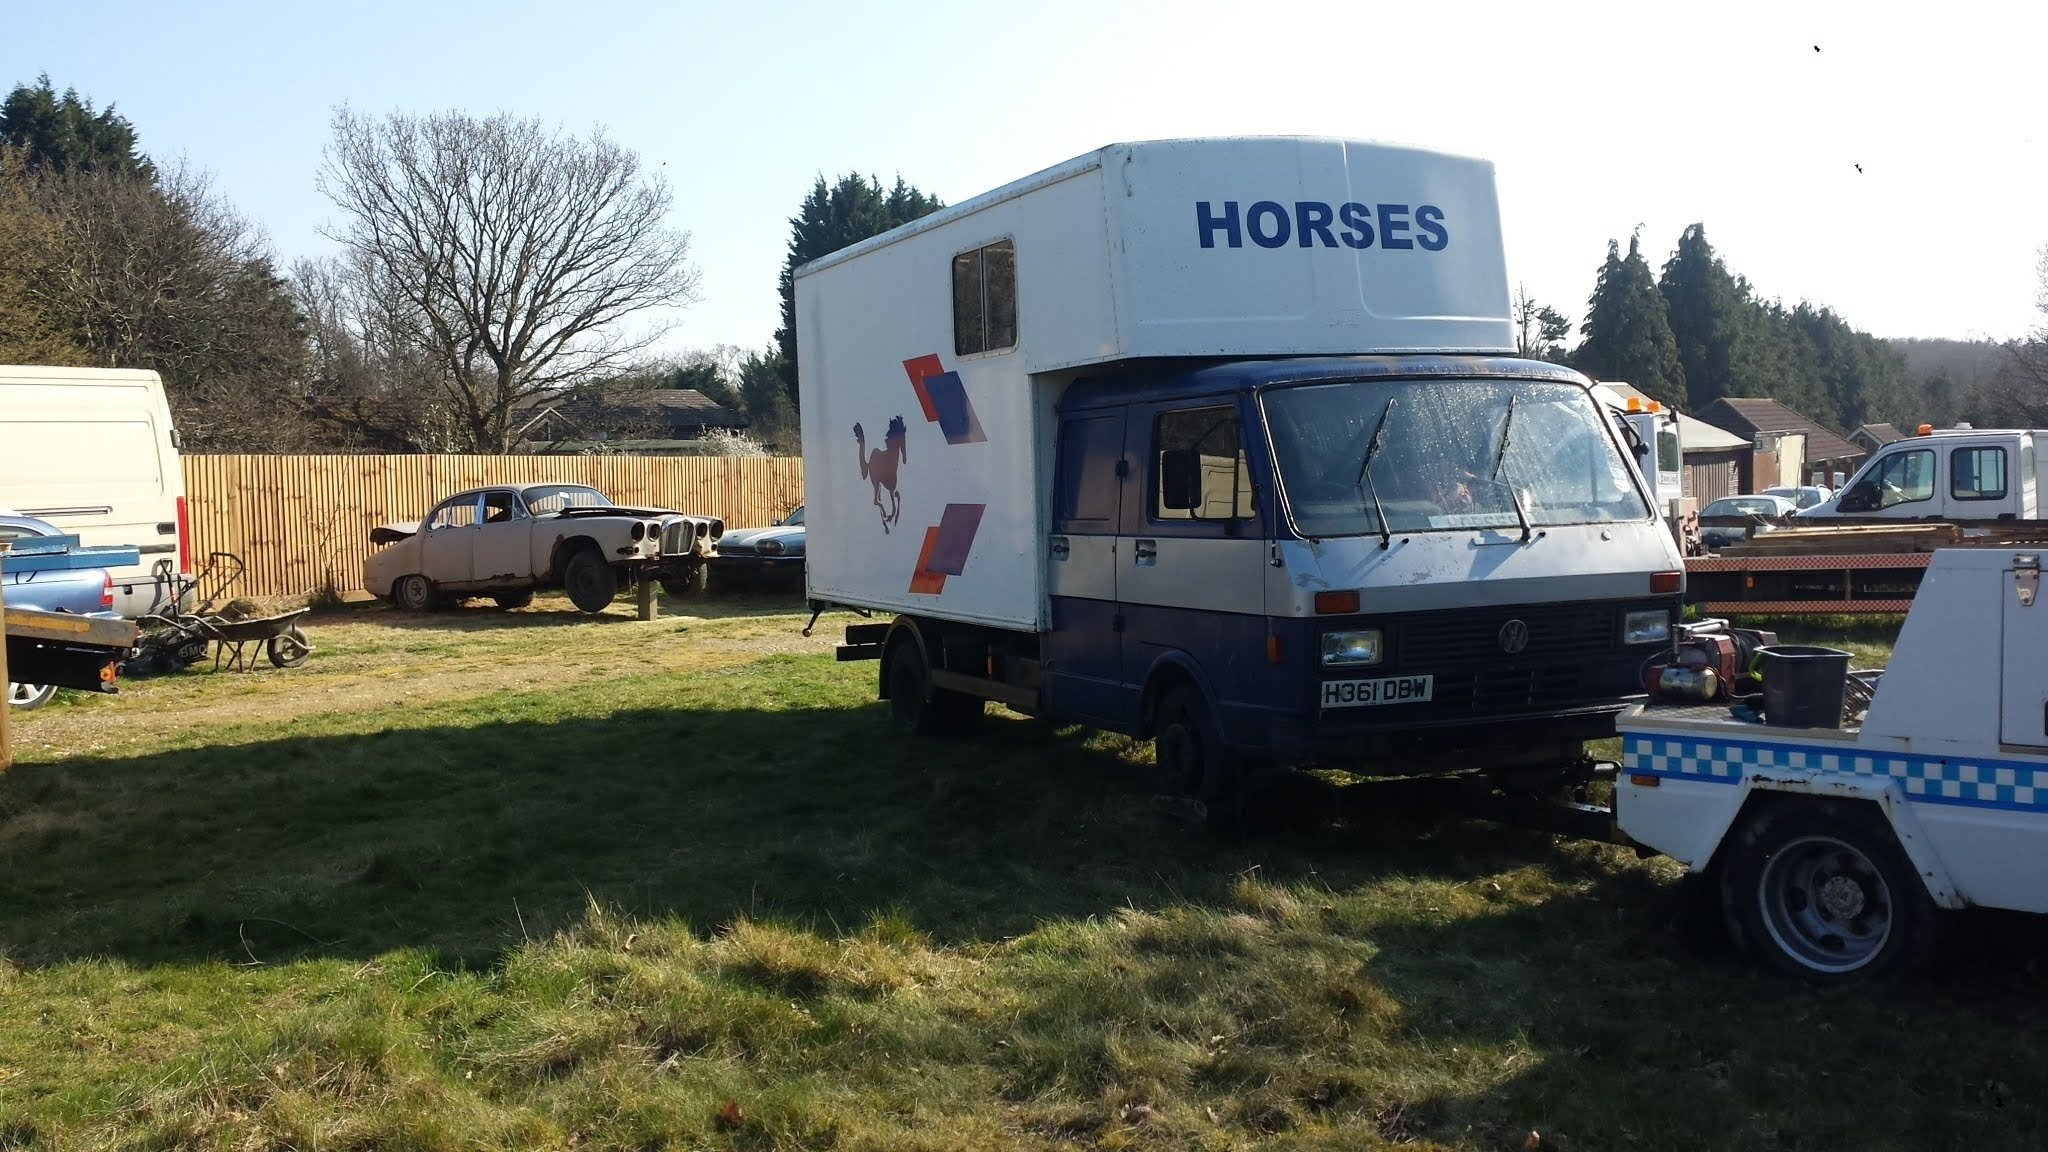 1990 LT 50 twin cab horses good Diy project For Sale (picture 4 of 6)